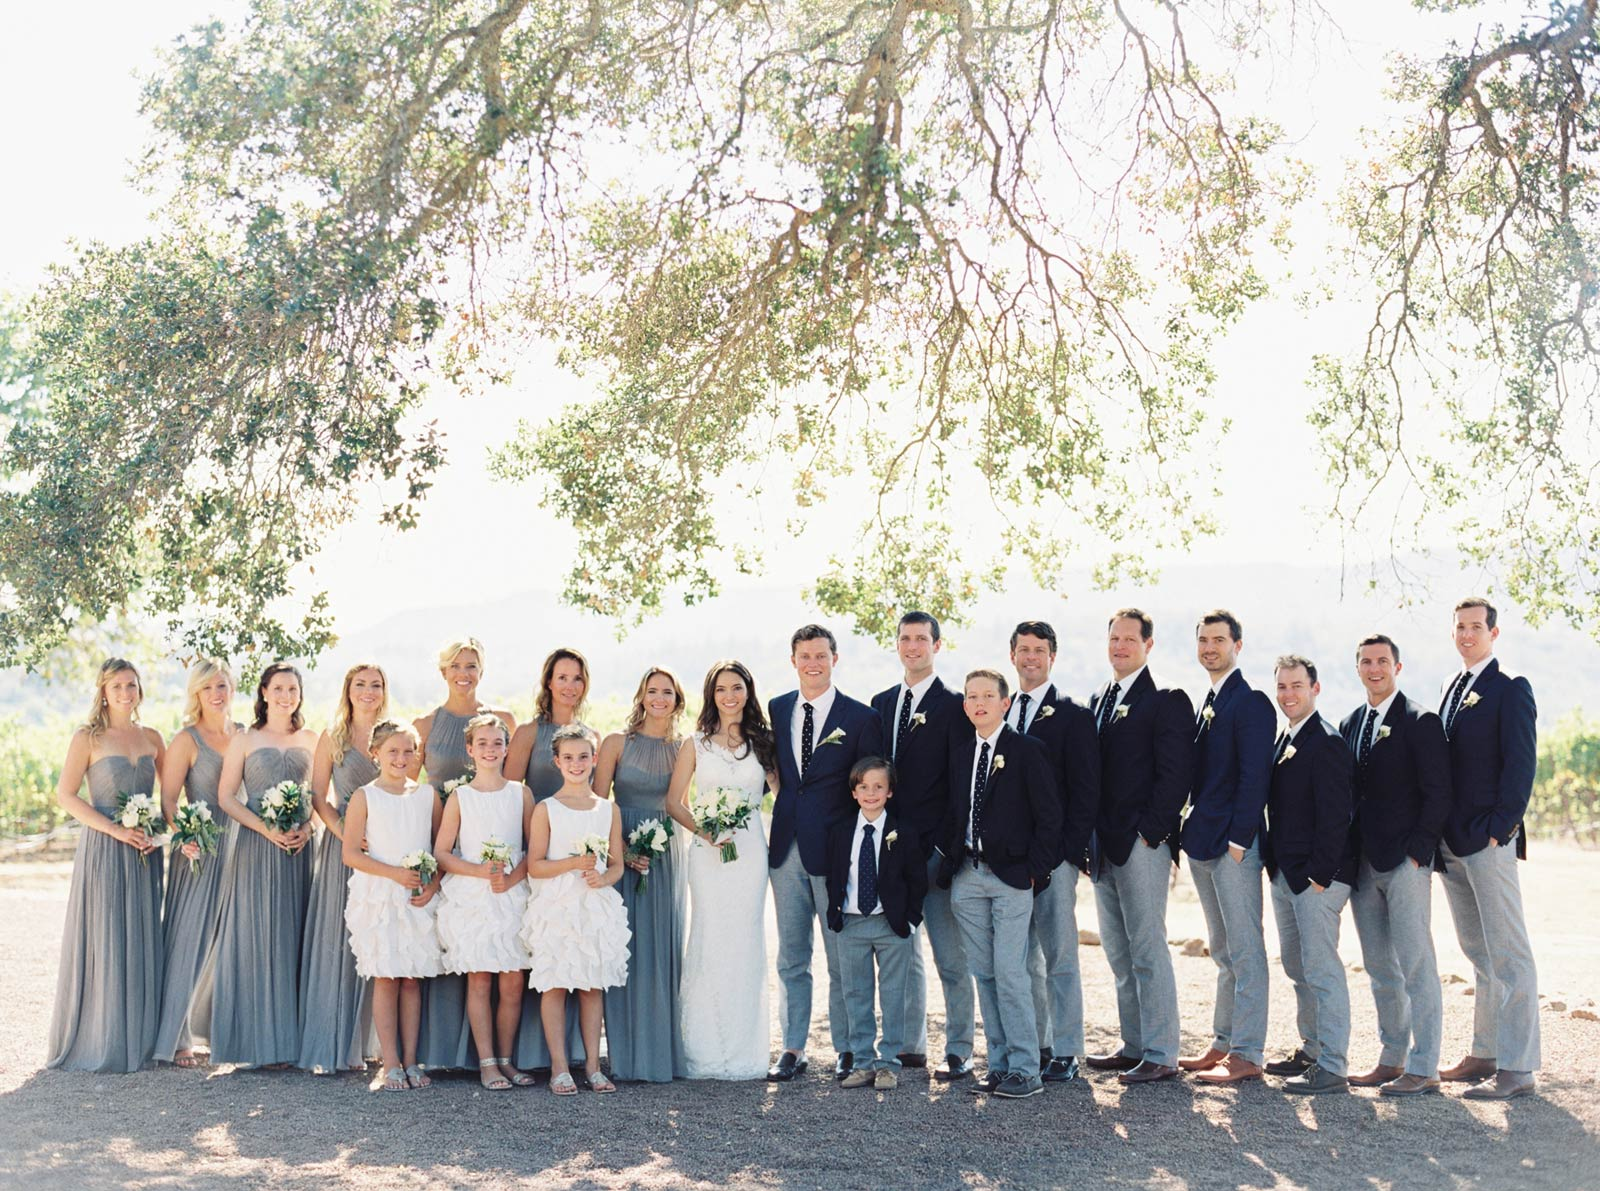 Kunde winery bride and groom wedding images